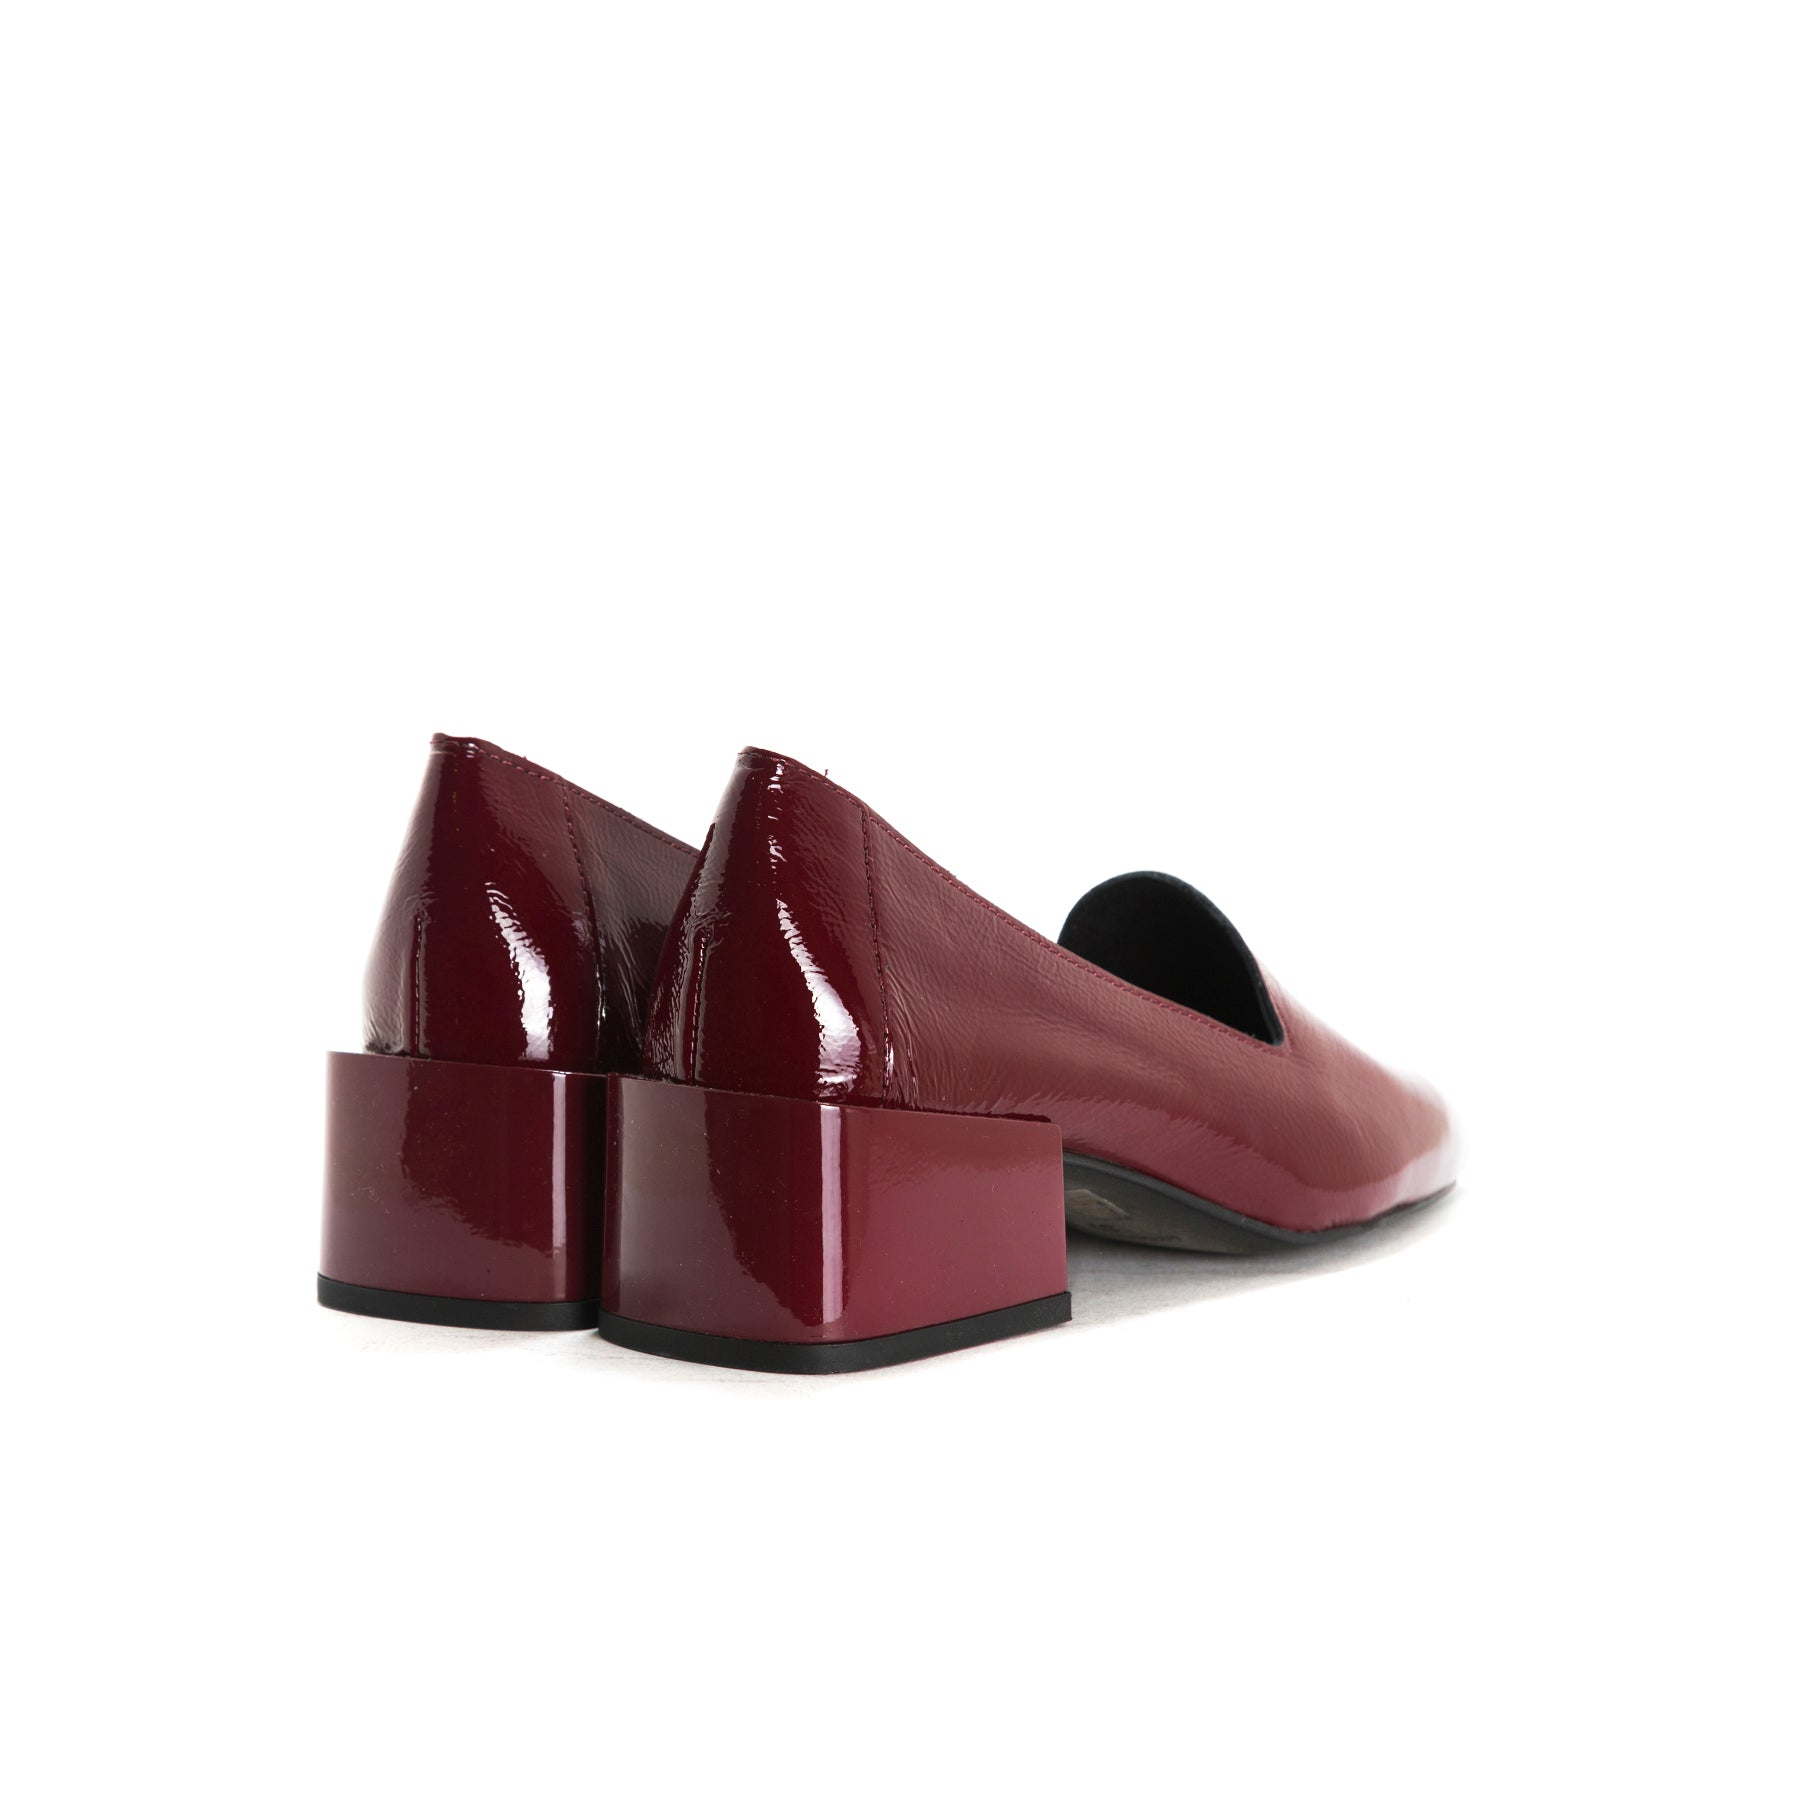 Dawn Bordo Naplack Shoes